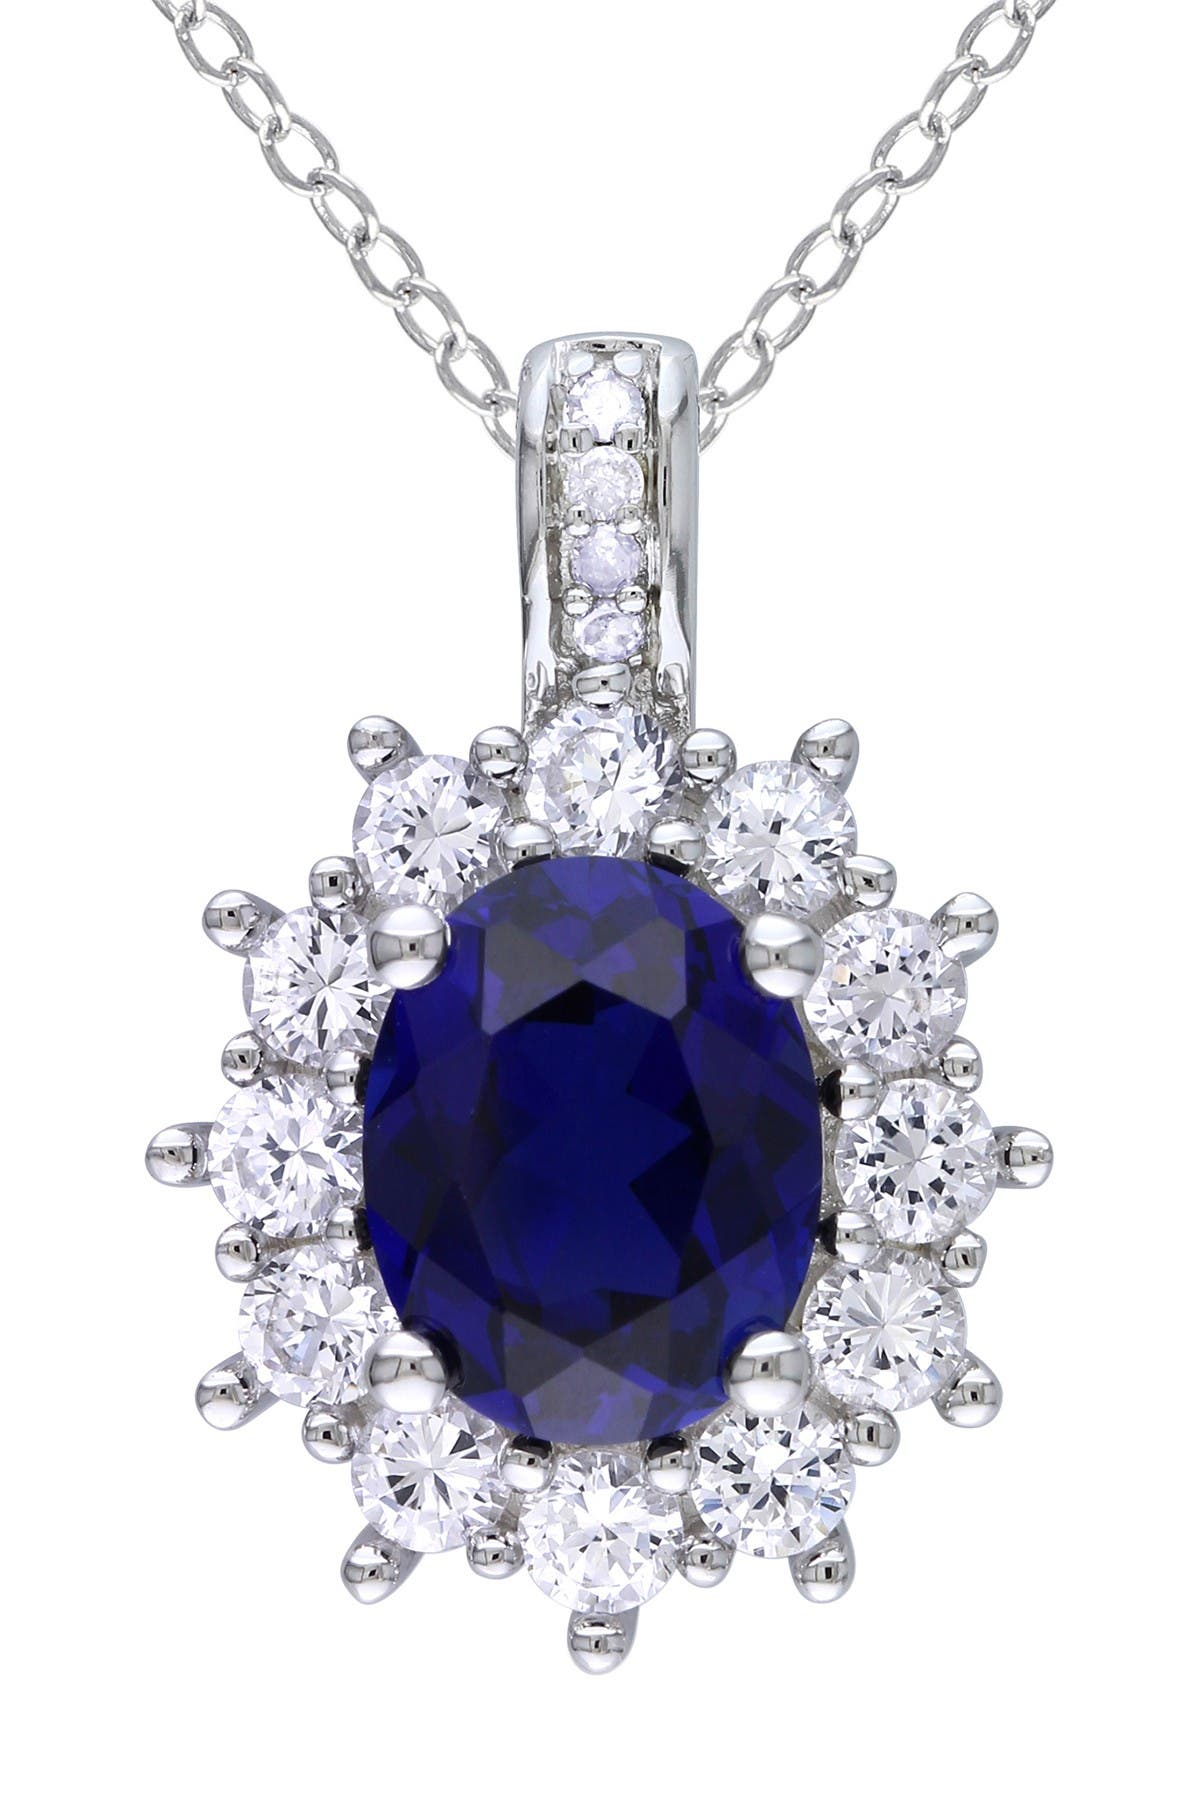 Image of Delmar Sterling Silver Oval Created Blue & White Sapphire Diamond Pendant Necklace - 0.02 ctw